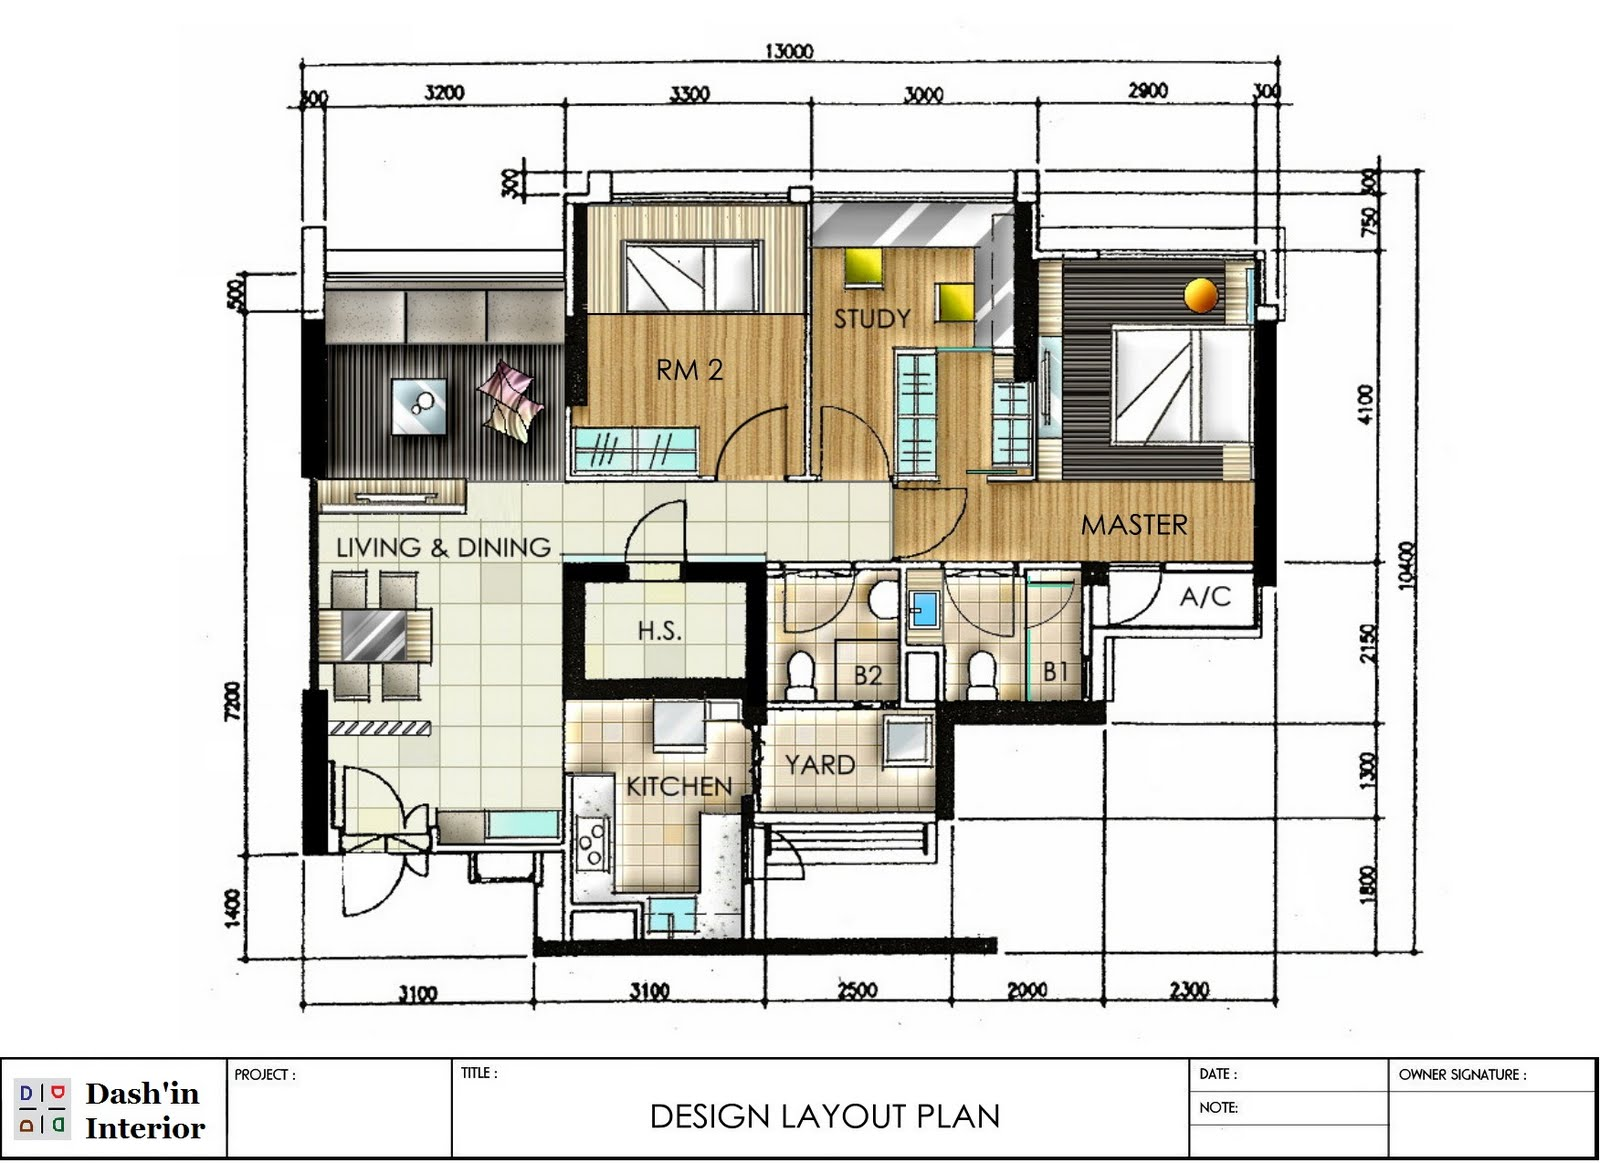 Dash 39 in interior hand drawn designs floor plan layout for Building layout design